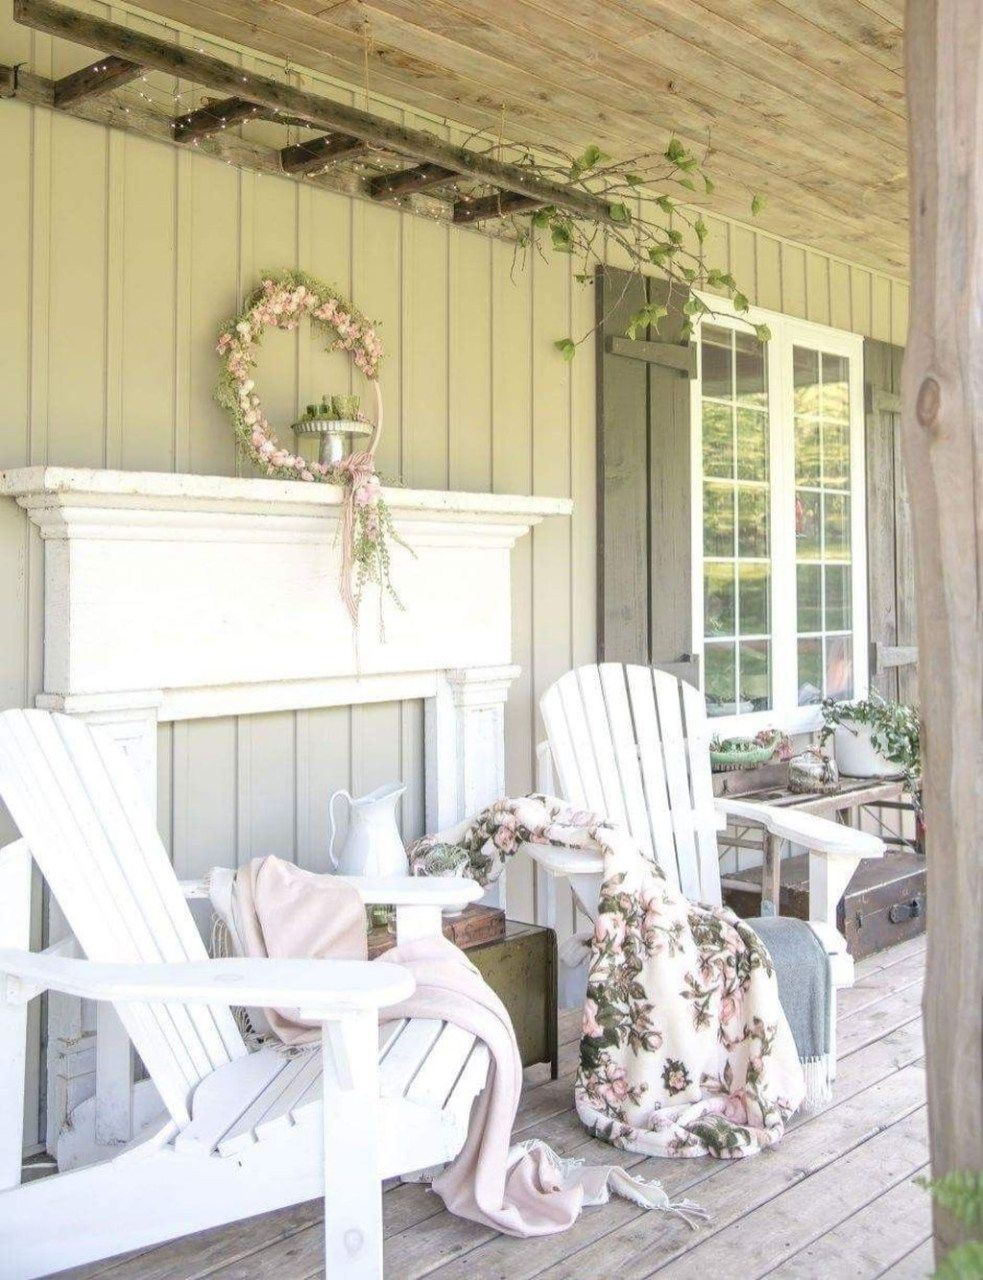 49 Easy Ways To Create A Relaxing Porch Ideas For Big Family - HOMYFEED #relaxingsummerporches